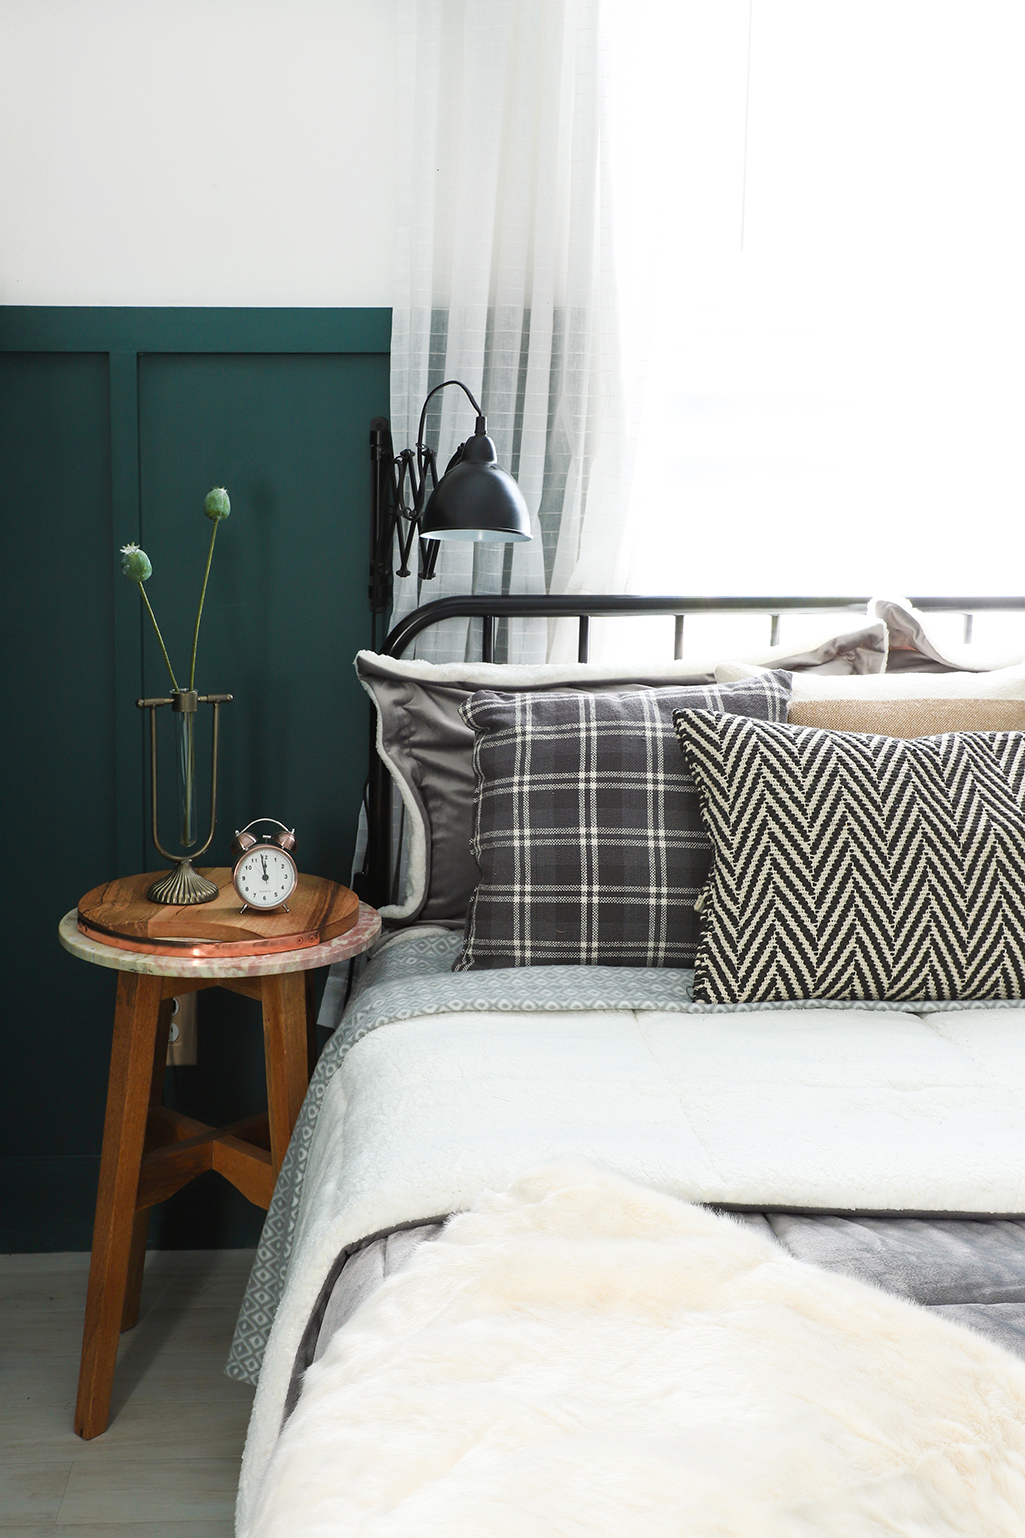 Tips For Sustainably Refreshing Your Bedroom Upcycling Old Bedding Aldi Blog